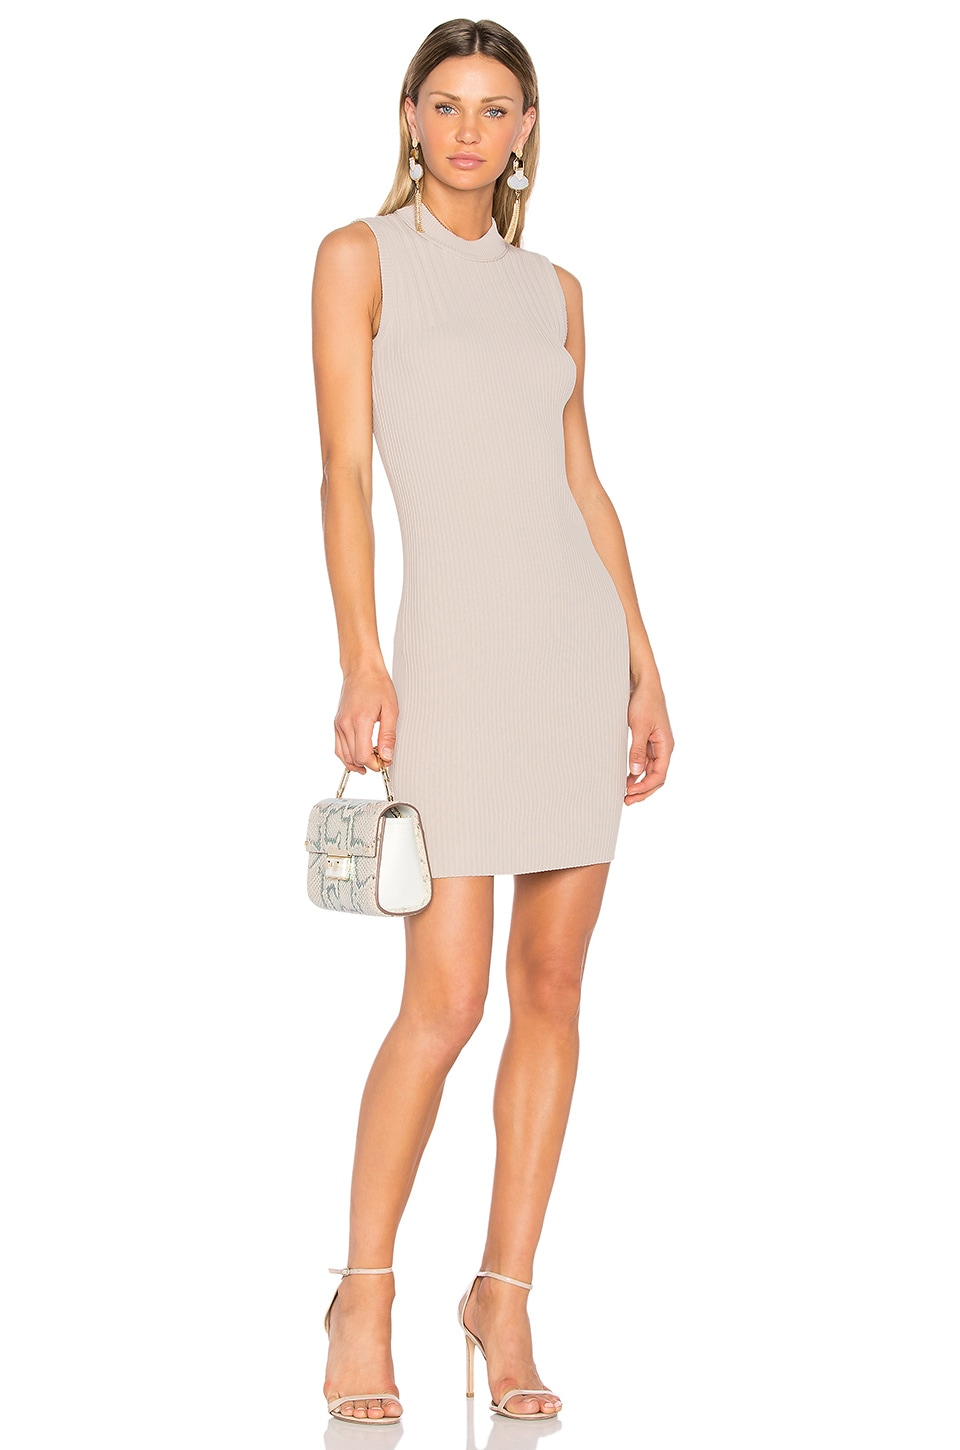 Photo of Ribbed Dress by Carven on sale